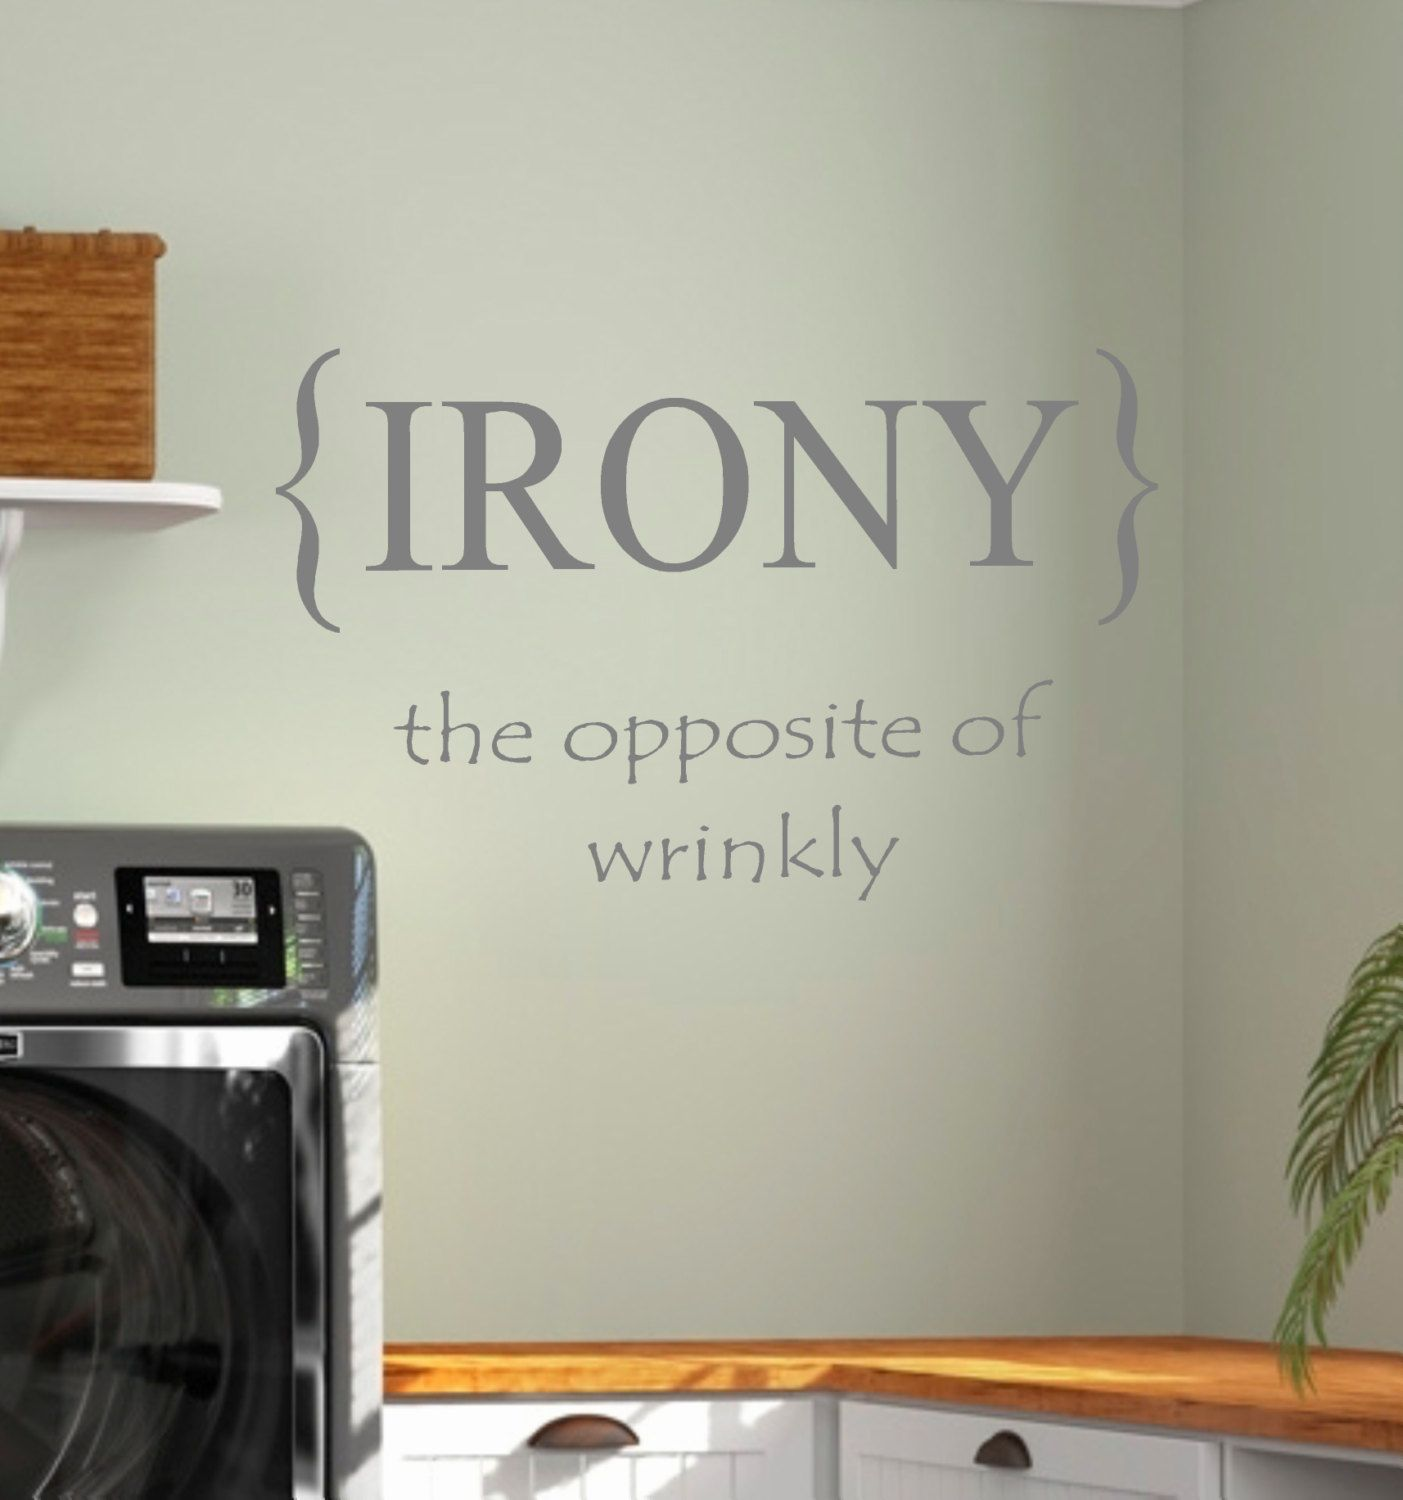 Vinyl Laundry Room Sayings Laundry Room Irony Vinyl Wall Decal Home Decorlandbgraphics